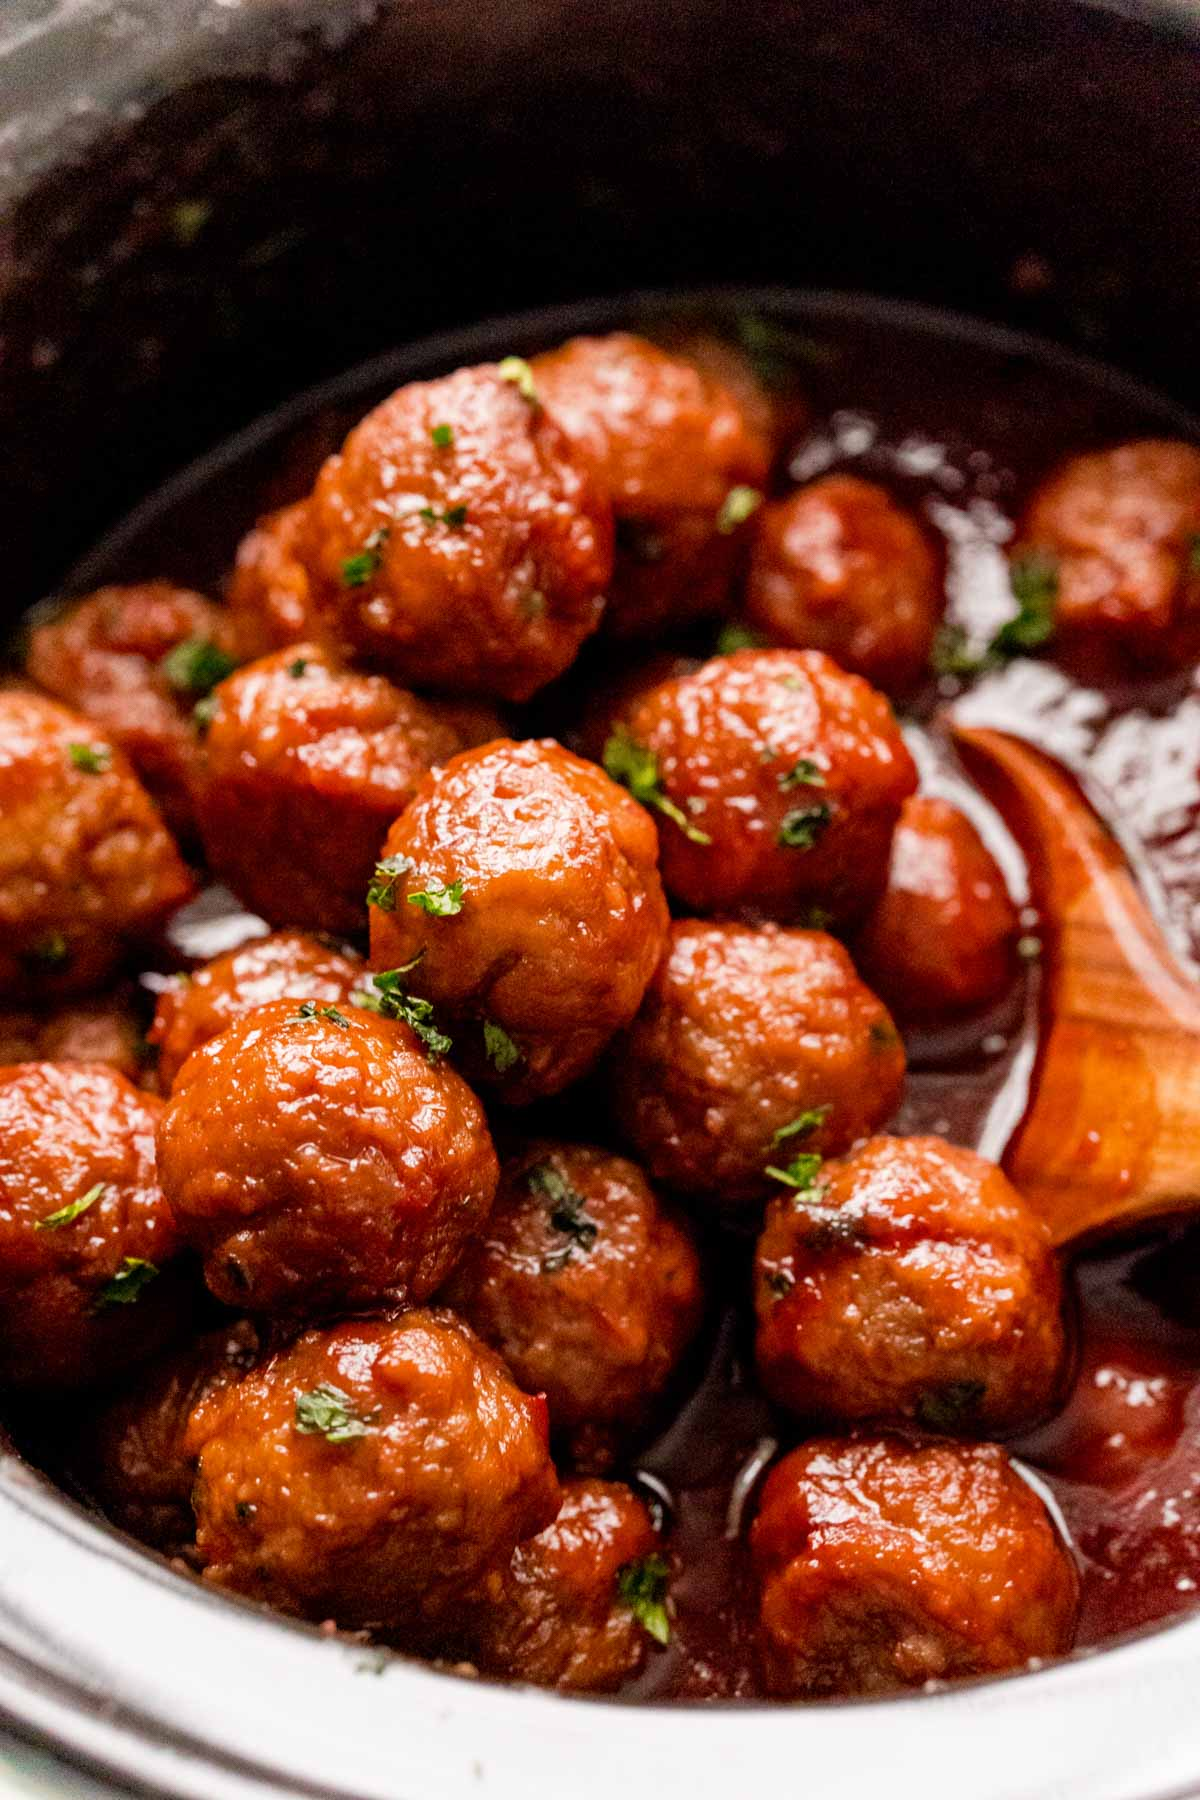 Crockpot grape jelly meatballs with a wooden spoon